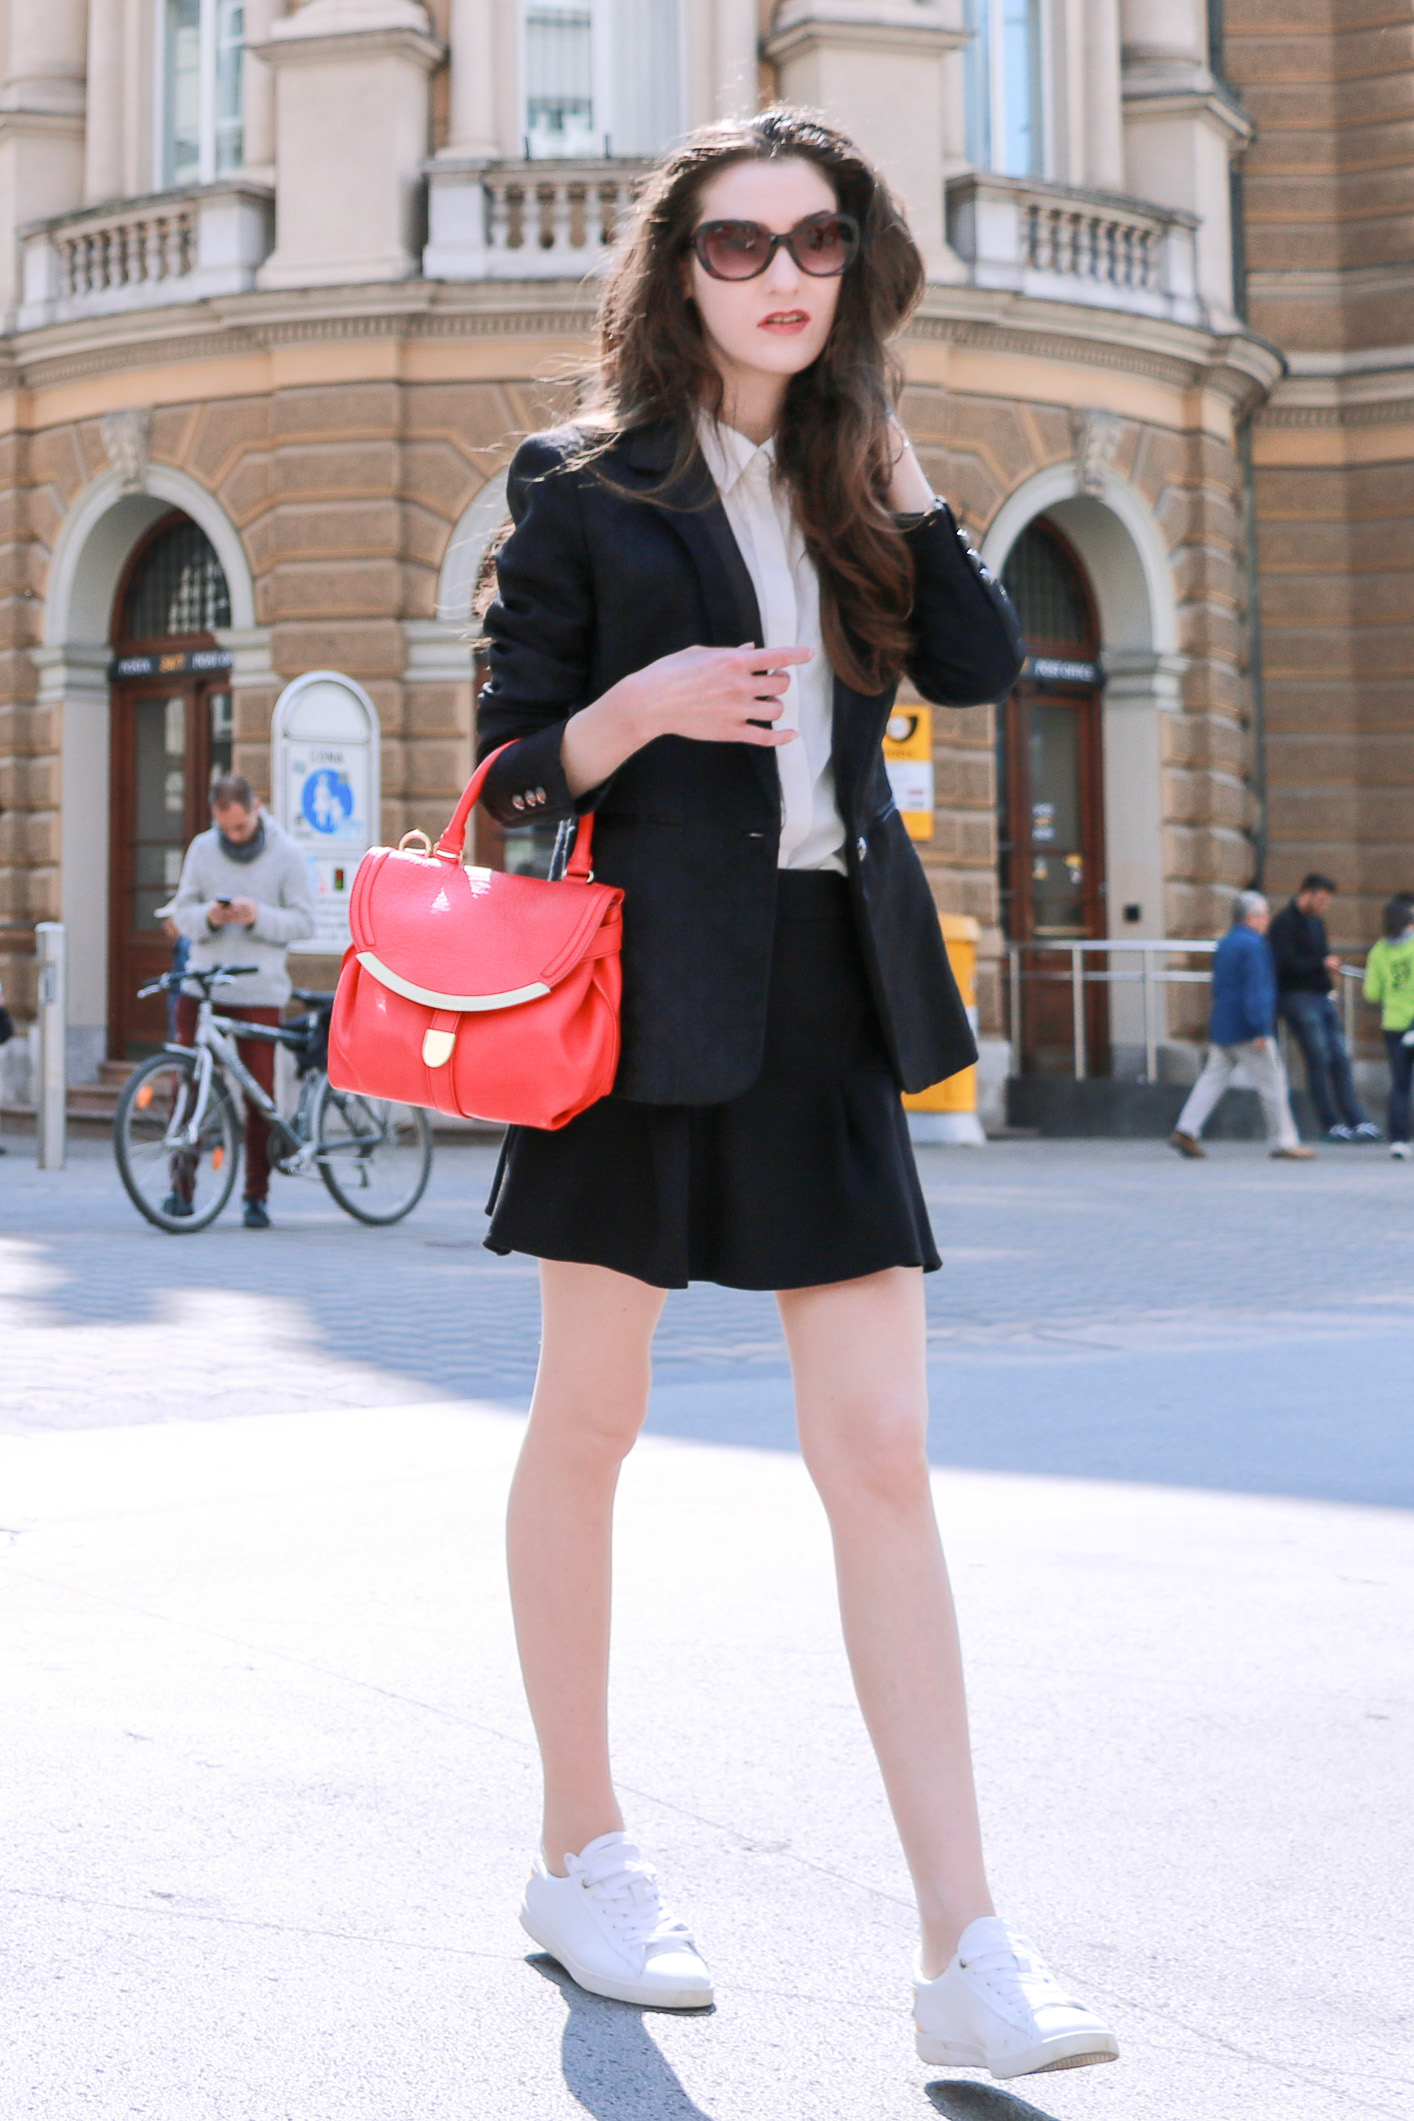 Fashion blogger Veronika Lipar of Brunette From Wall Street sharing how to style mini skirt and blazer with sneakers